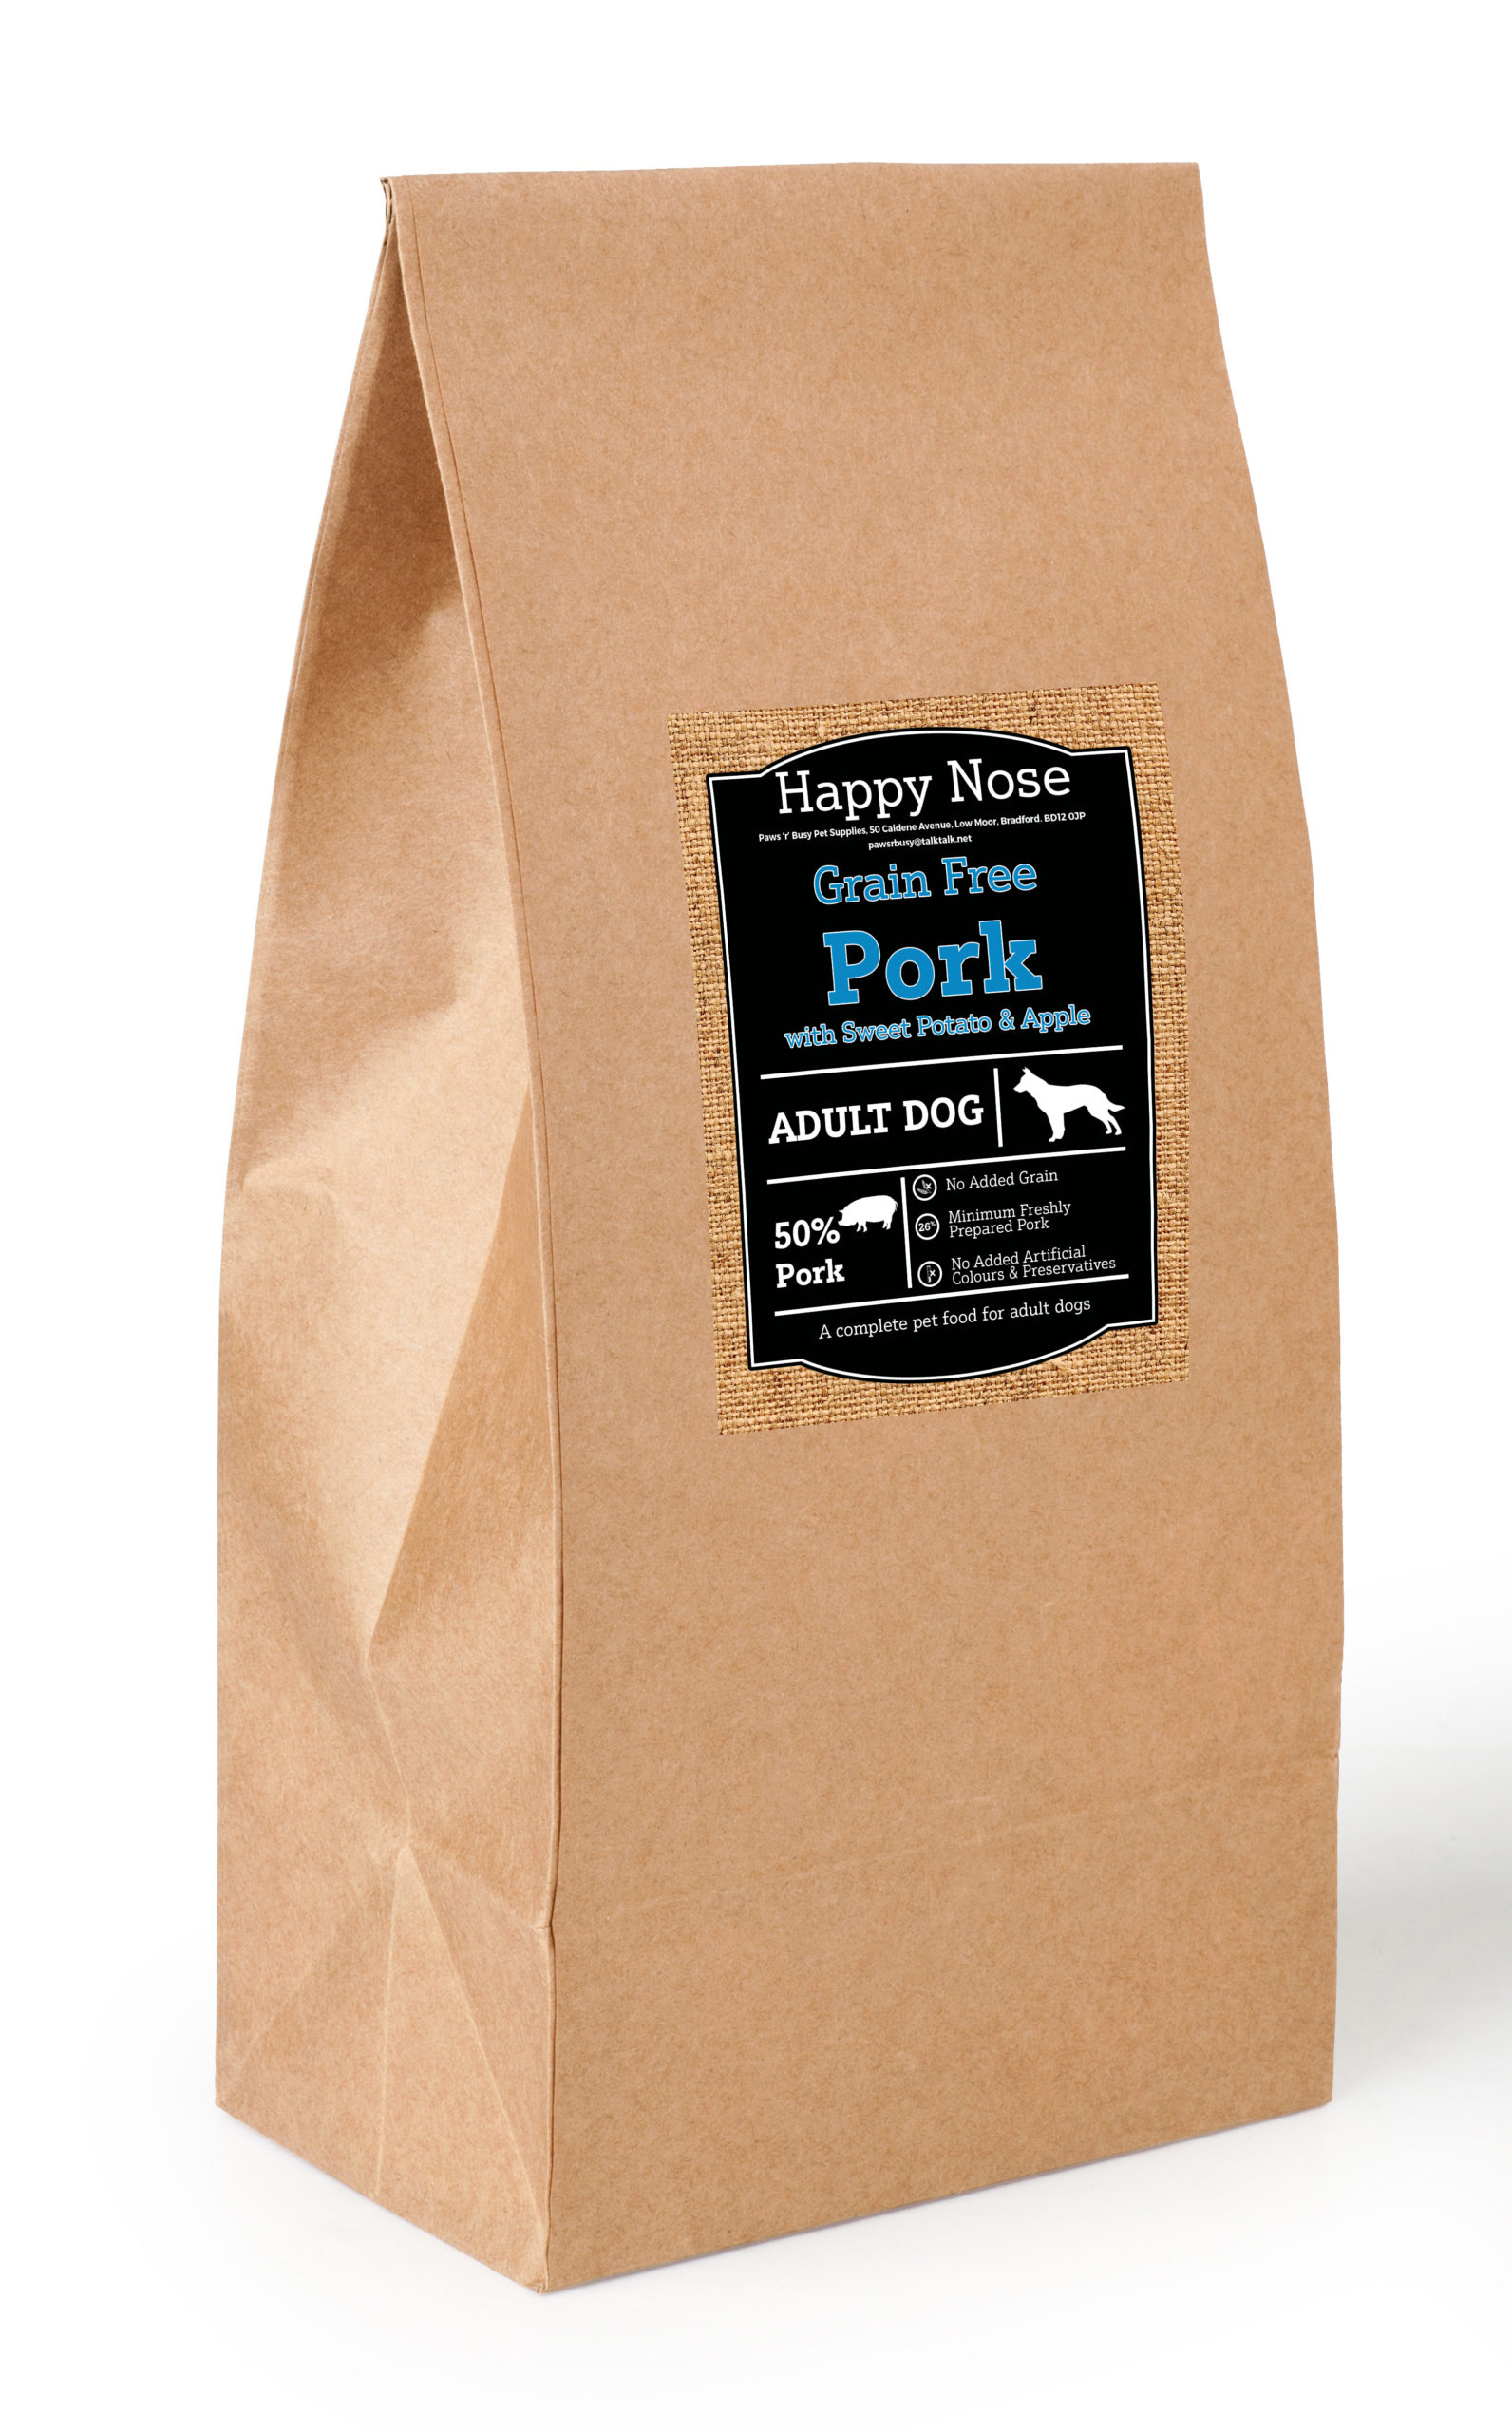 Pork, Sweet Potato & Apple Adult Dog Food